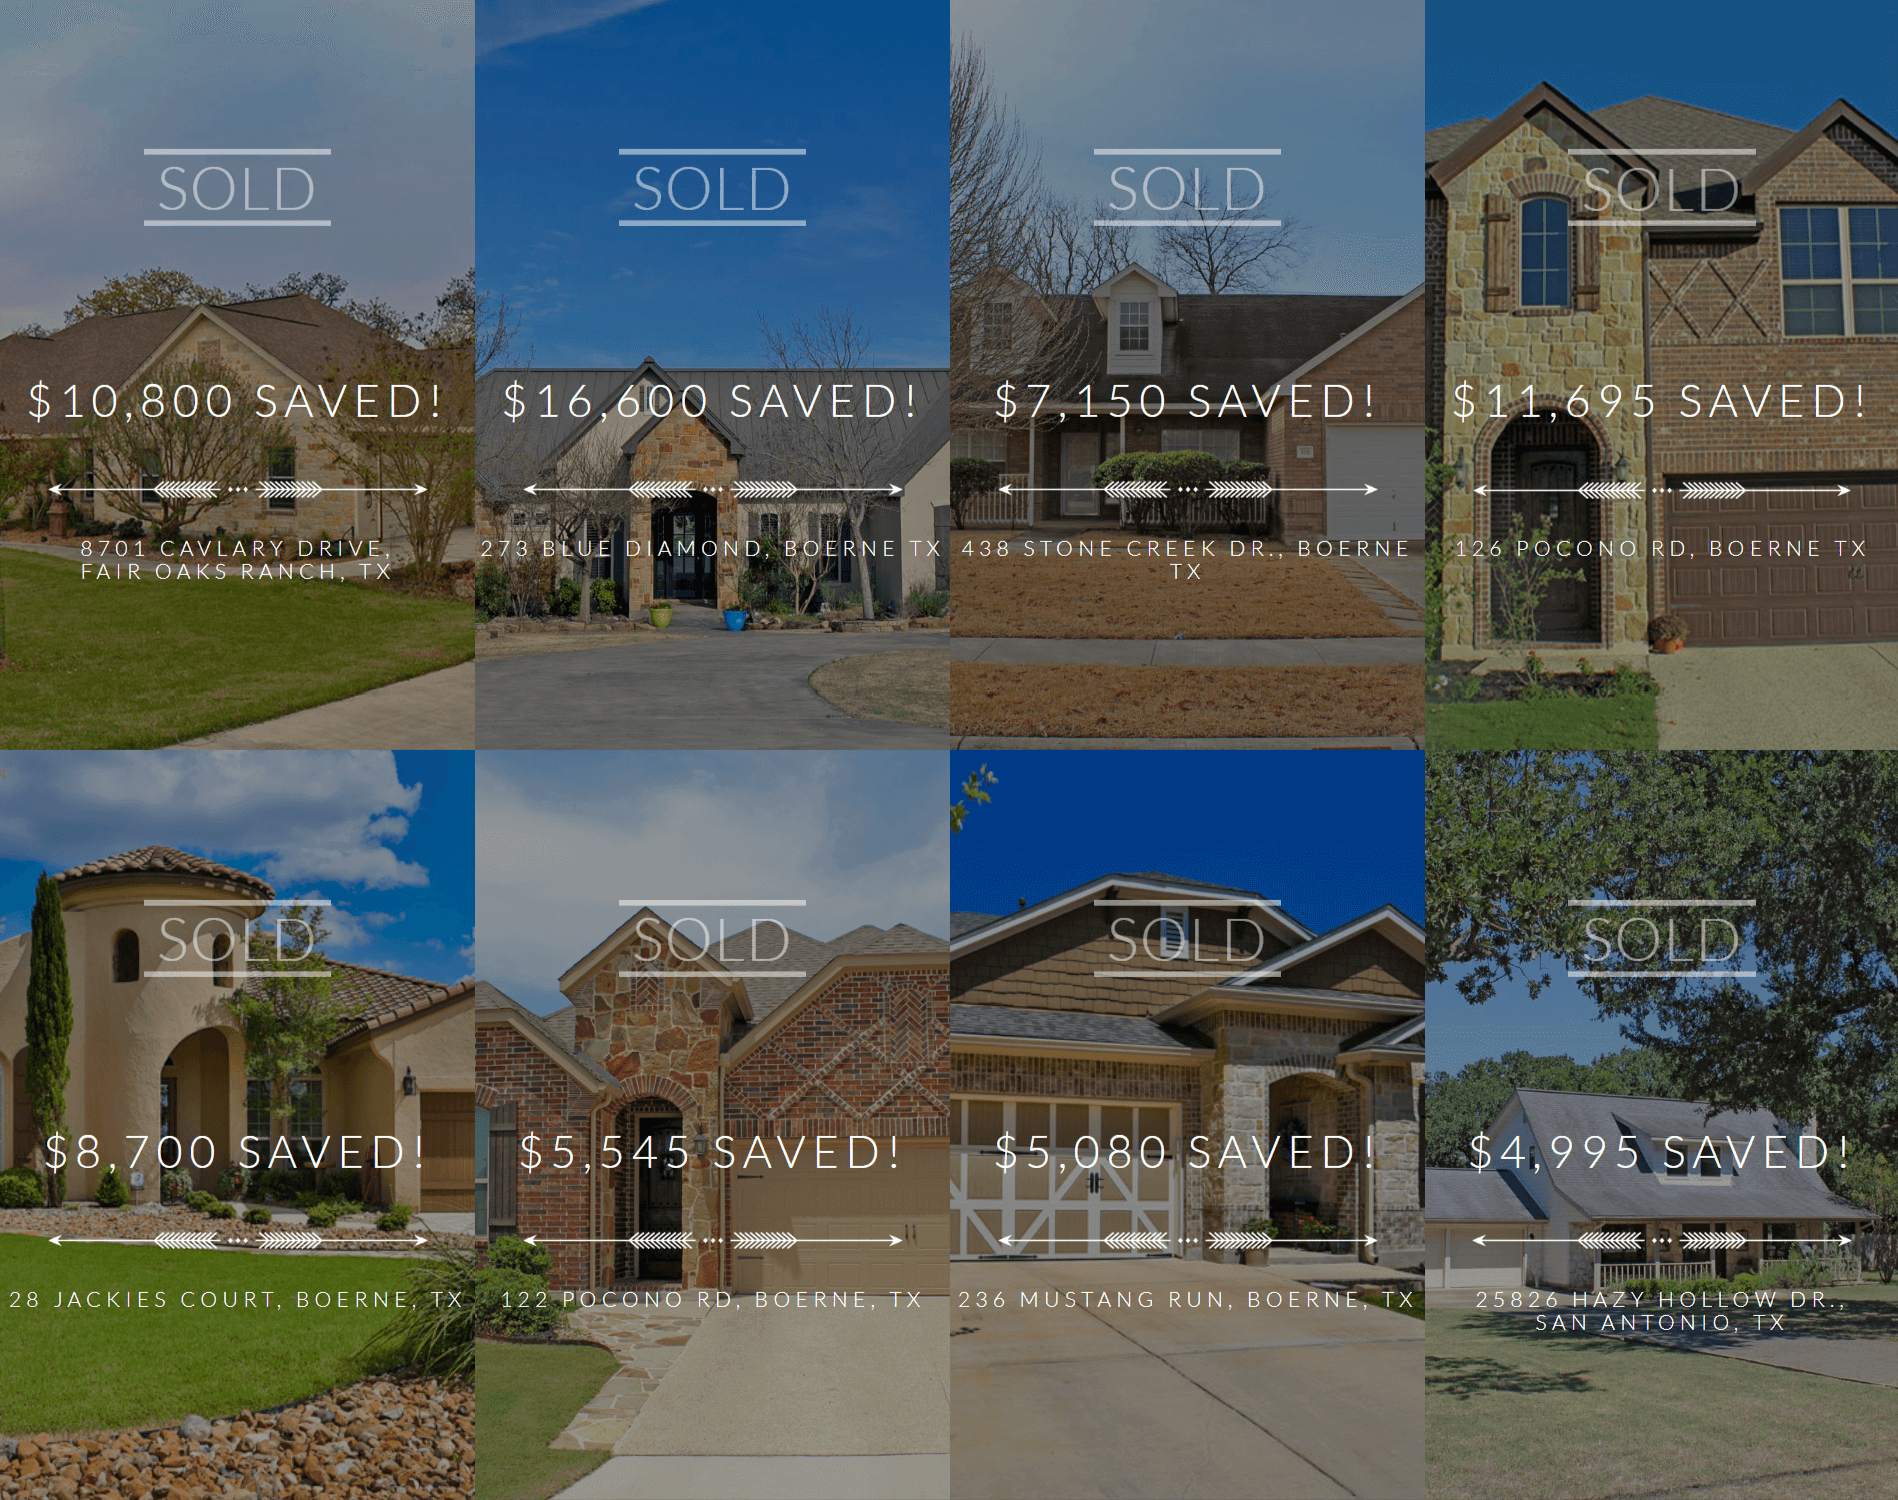 Example of real estate social proof. Grid of 8 sold homes with the amount of money saved over each one.